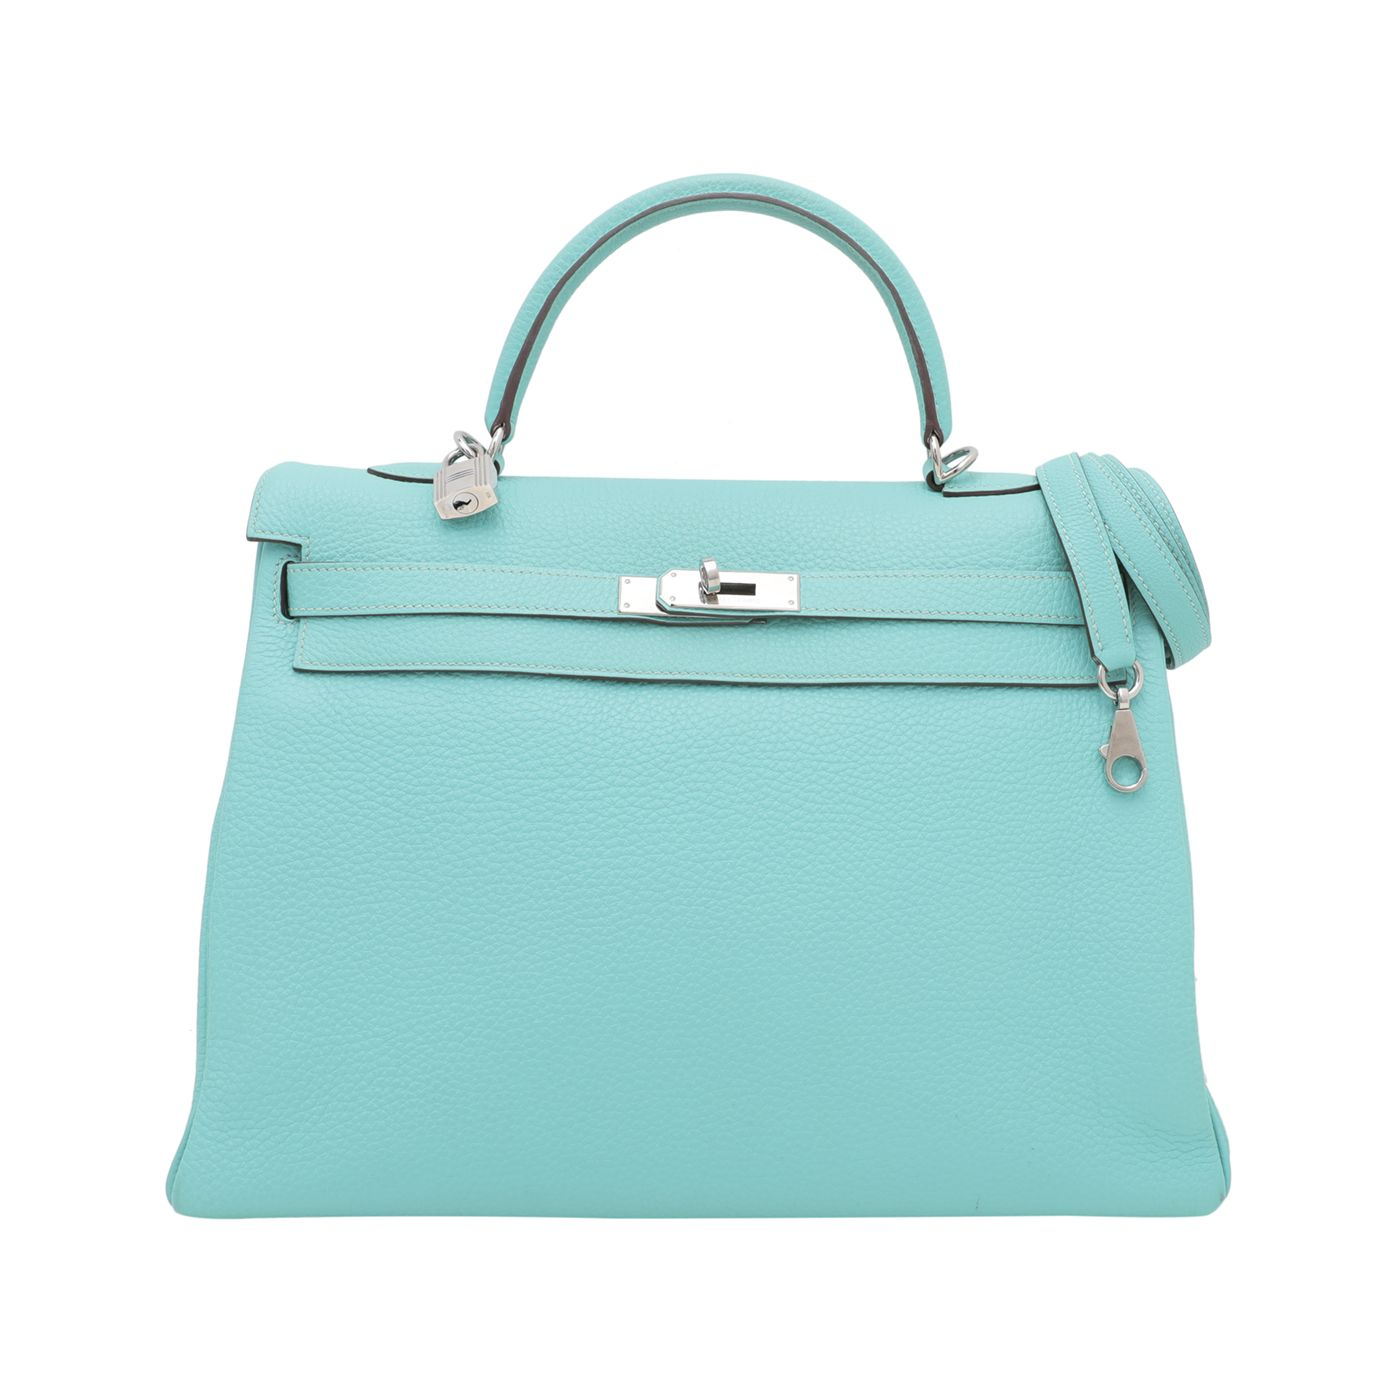 Hermes Lagoon Togo Kelly 35 Bag